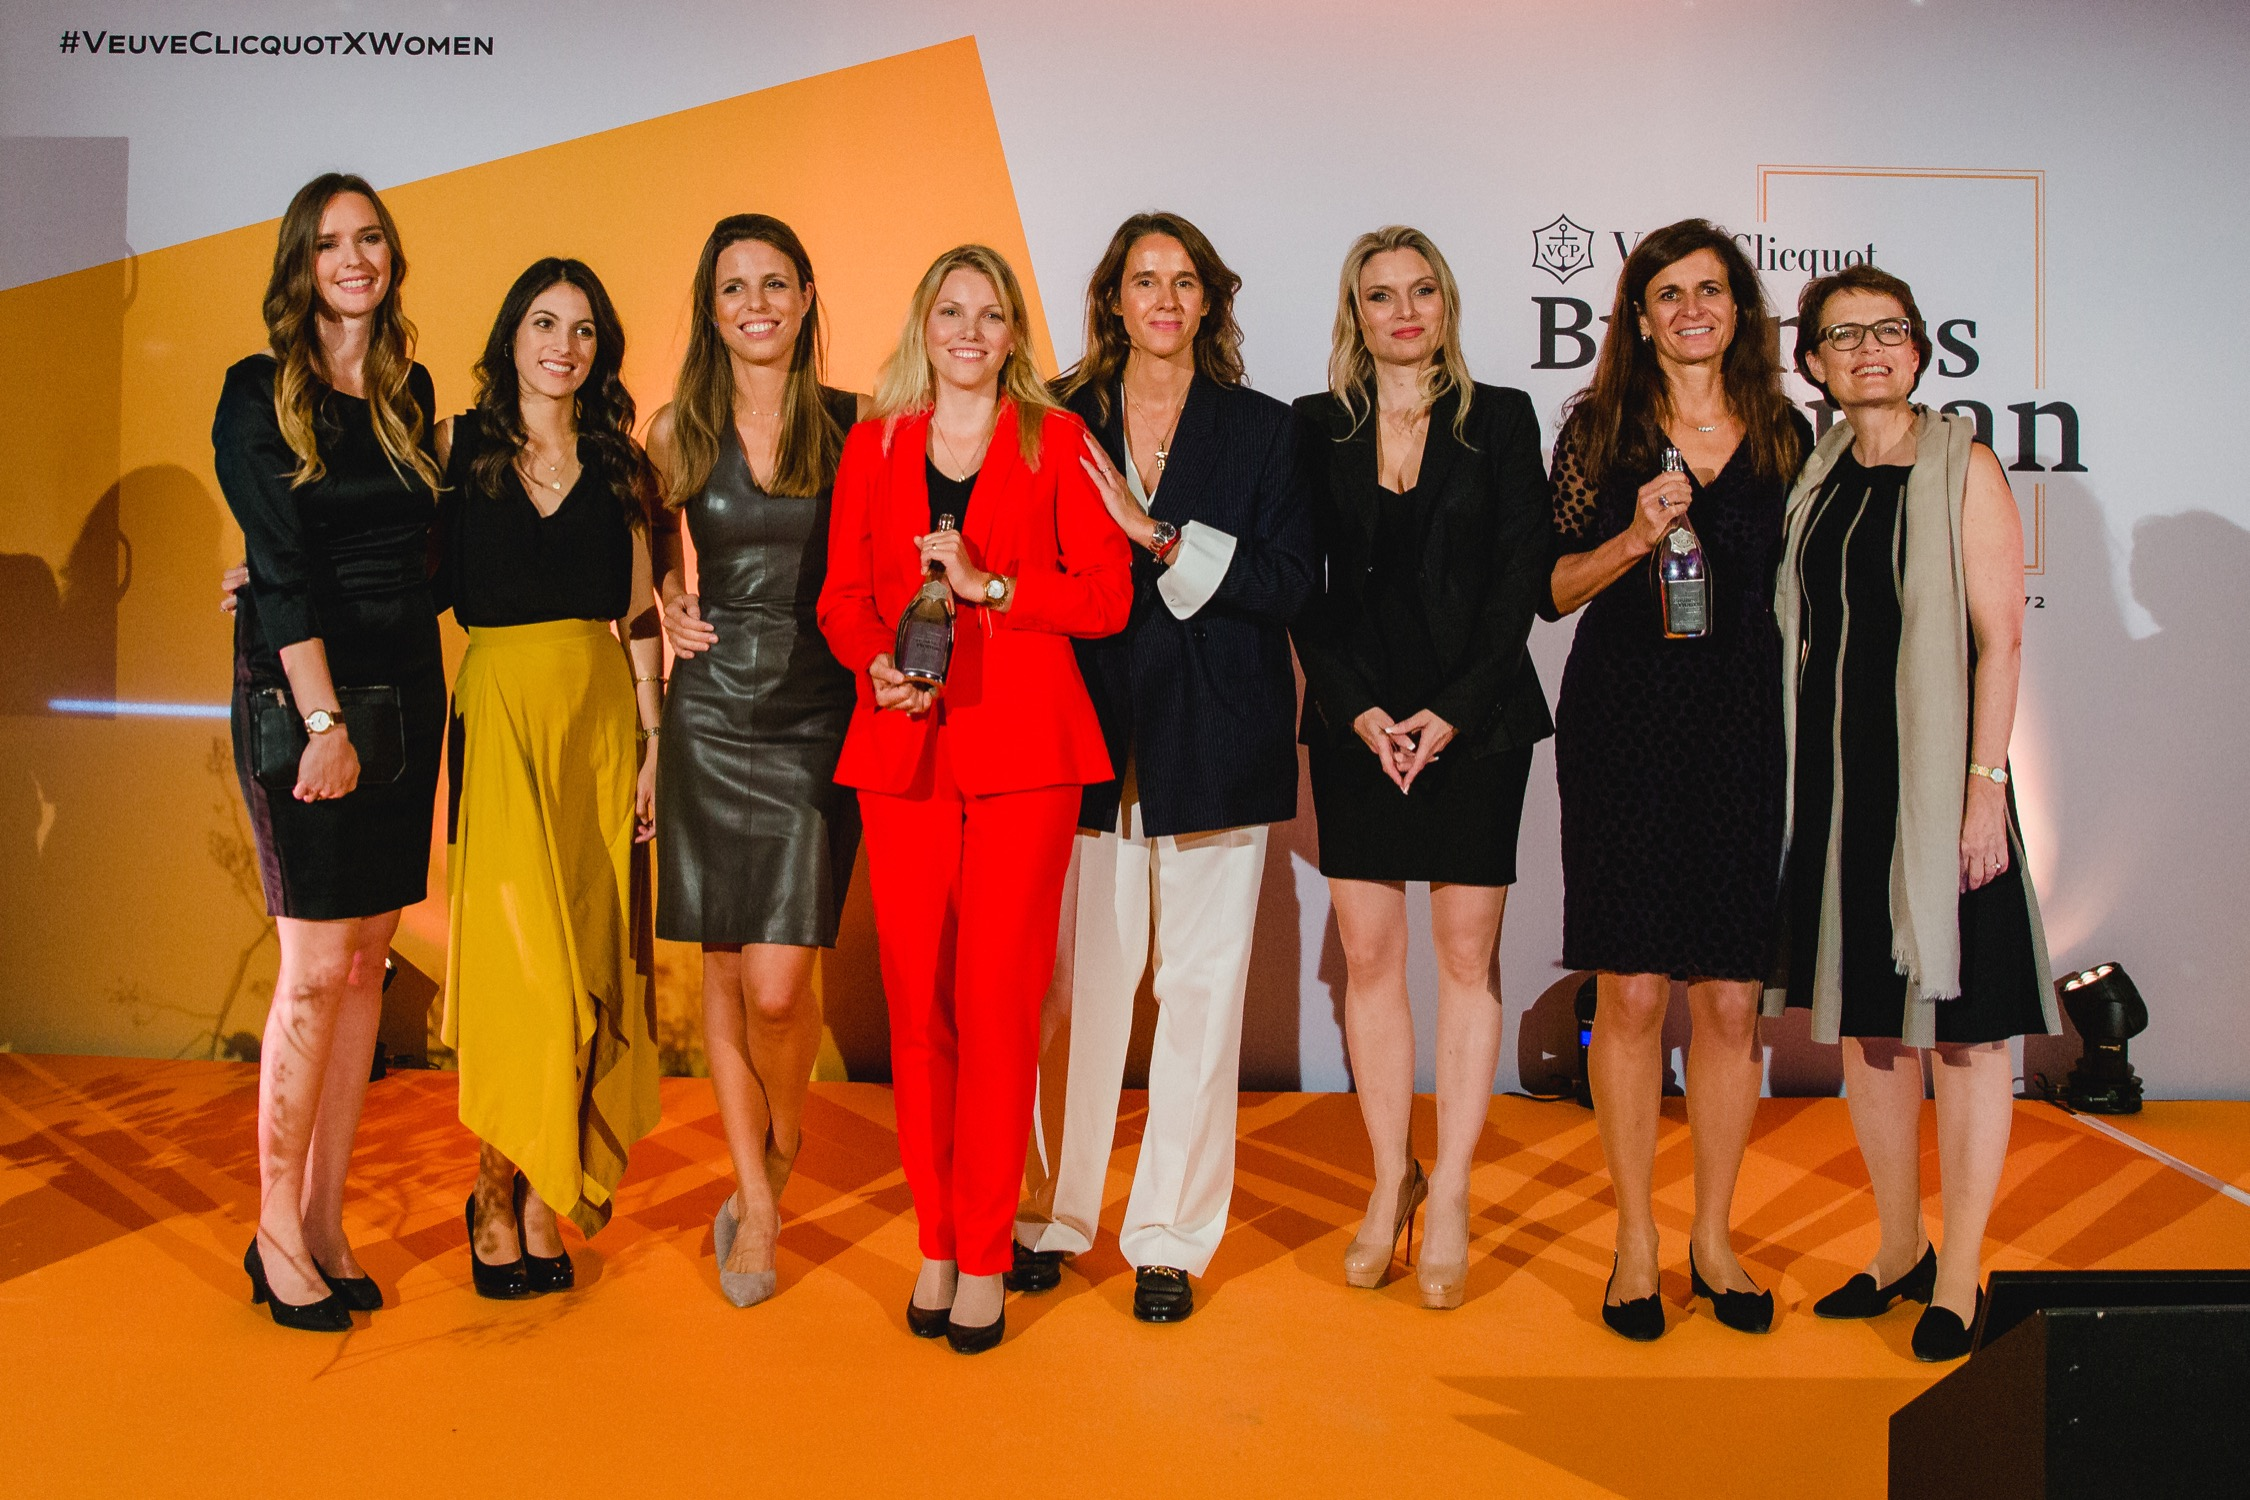 Finalists of Veuve Clicquot Business Woman Award 2019